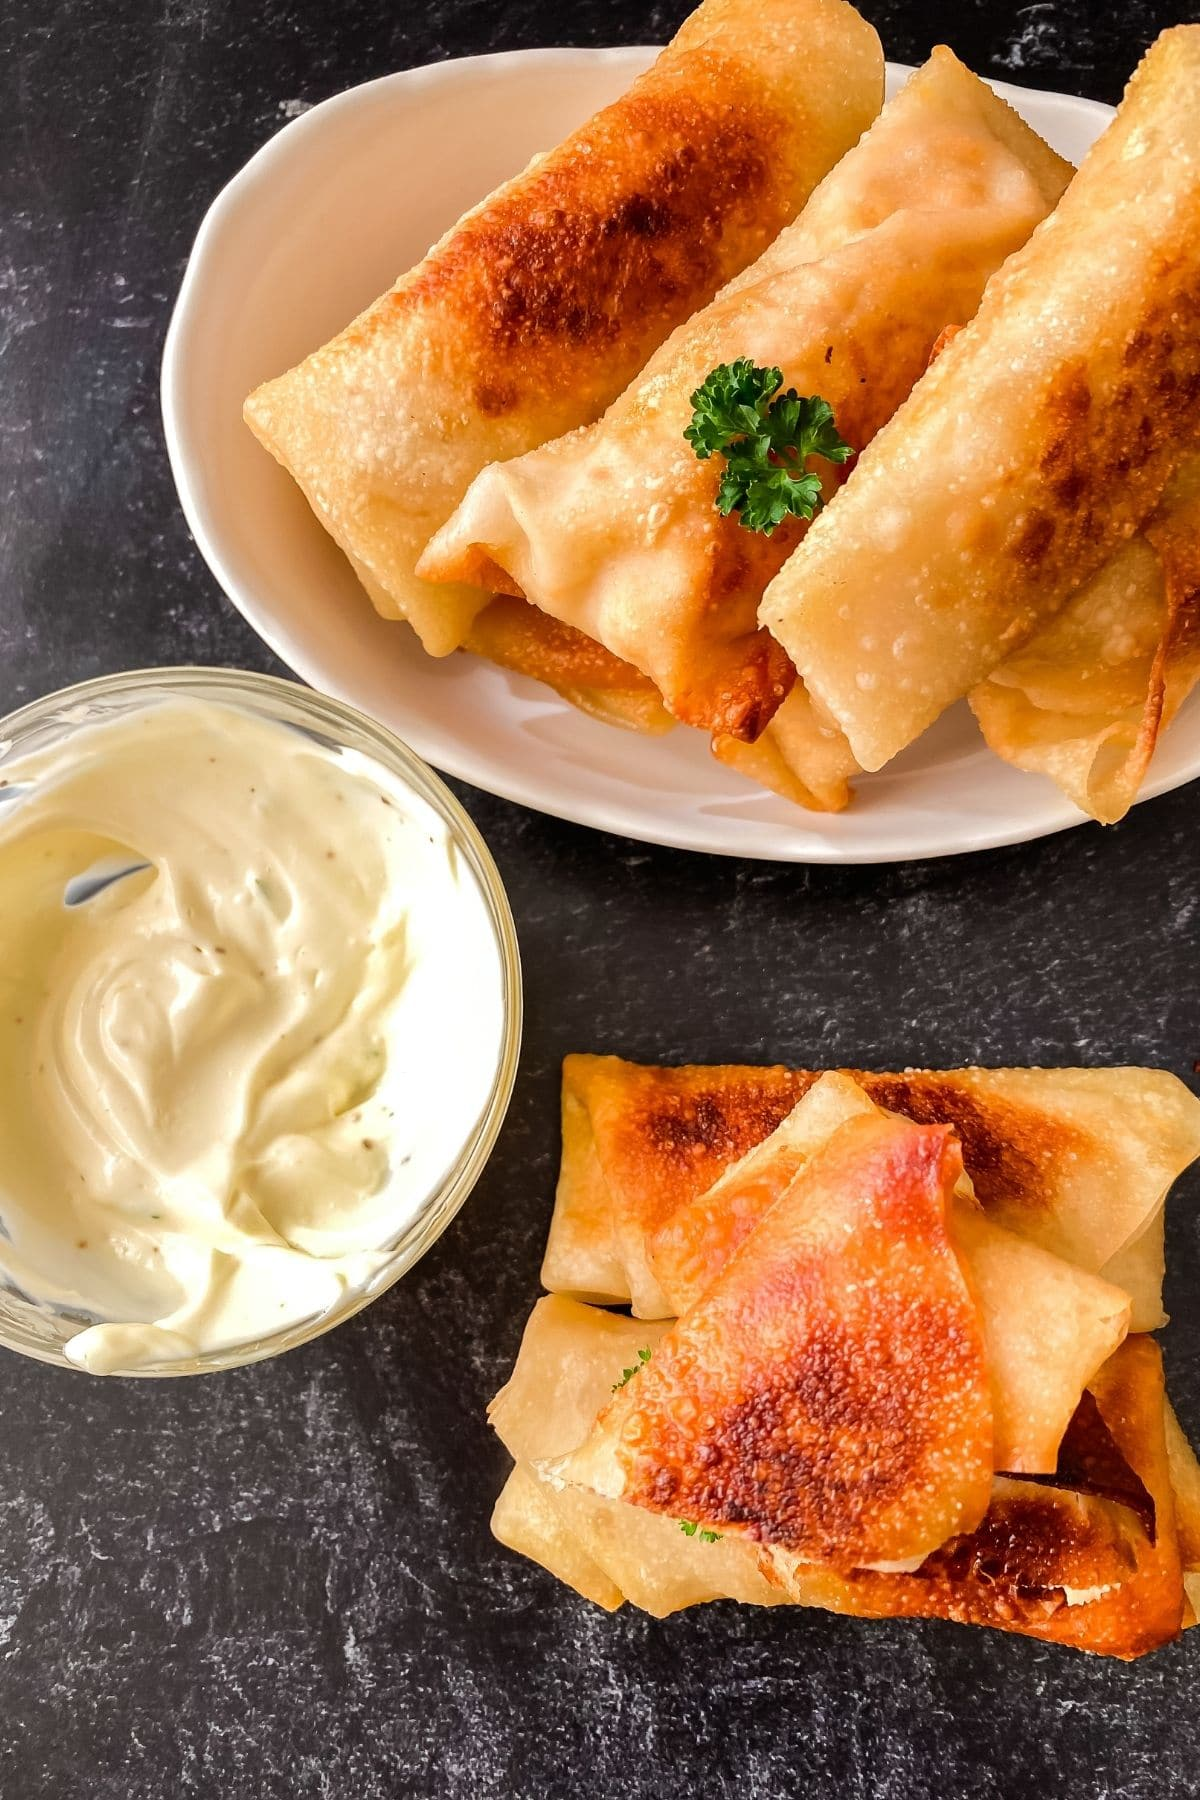 Image looking down on white plate of egg rolls with small stack on gray table beside bowl of ranch dip